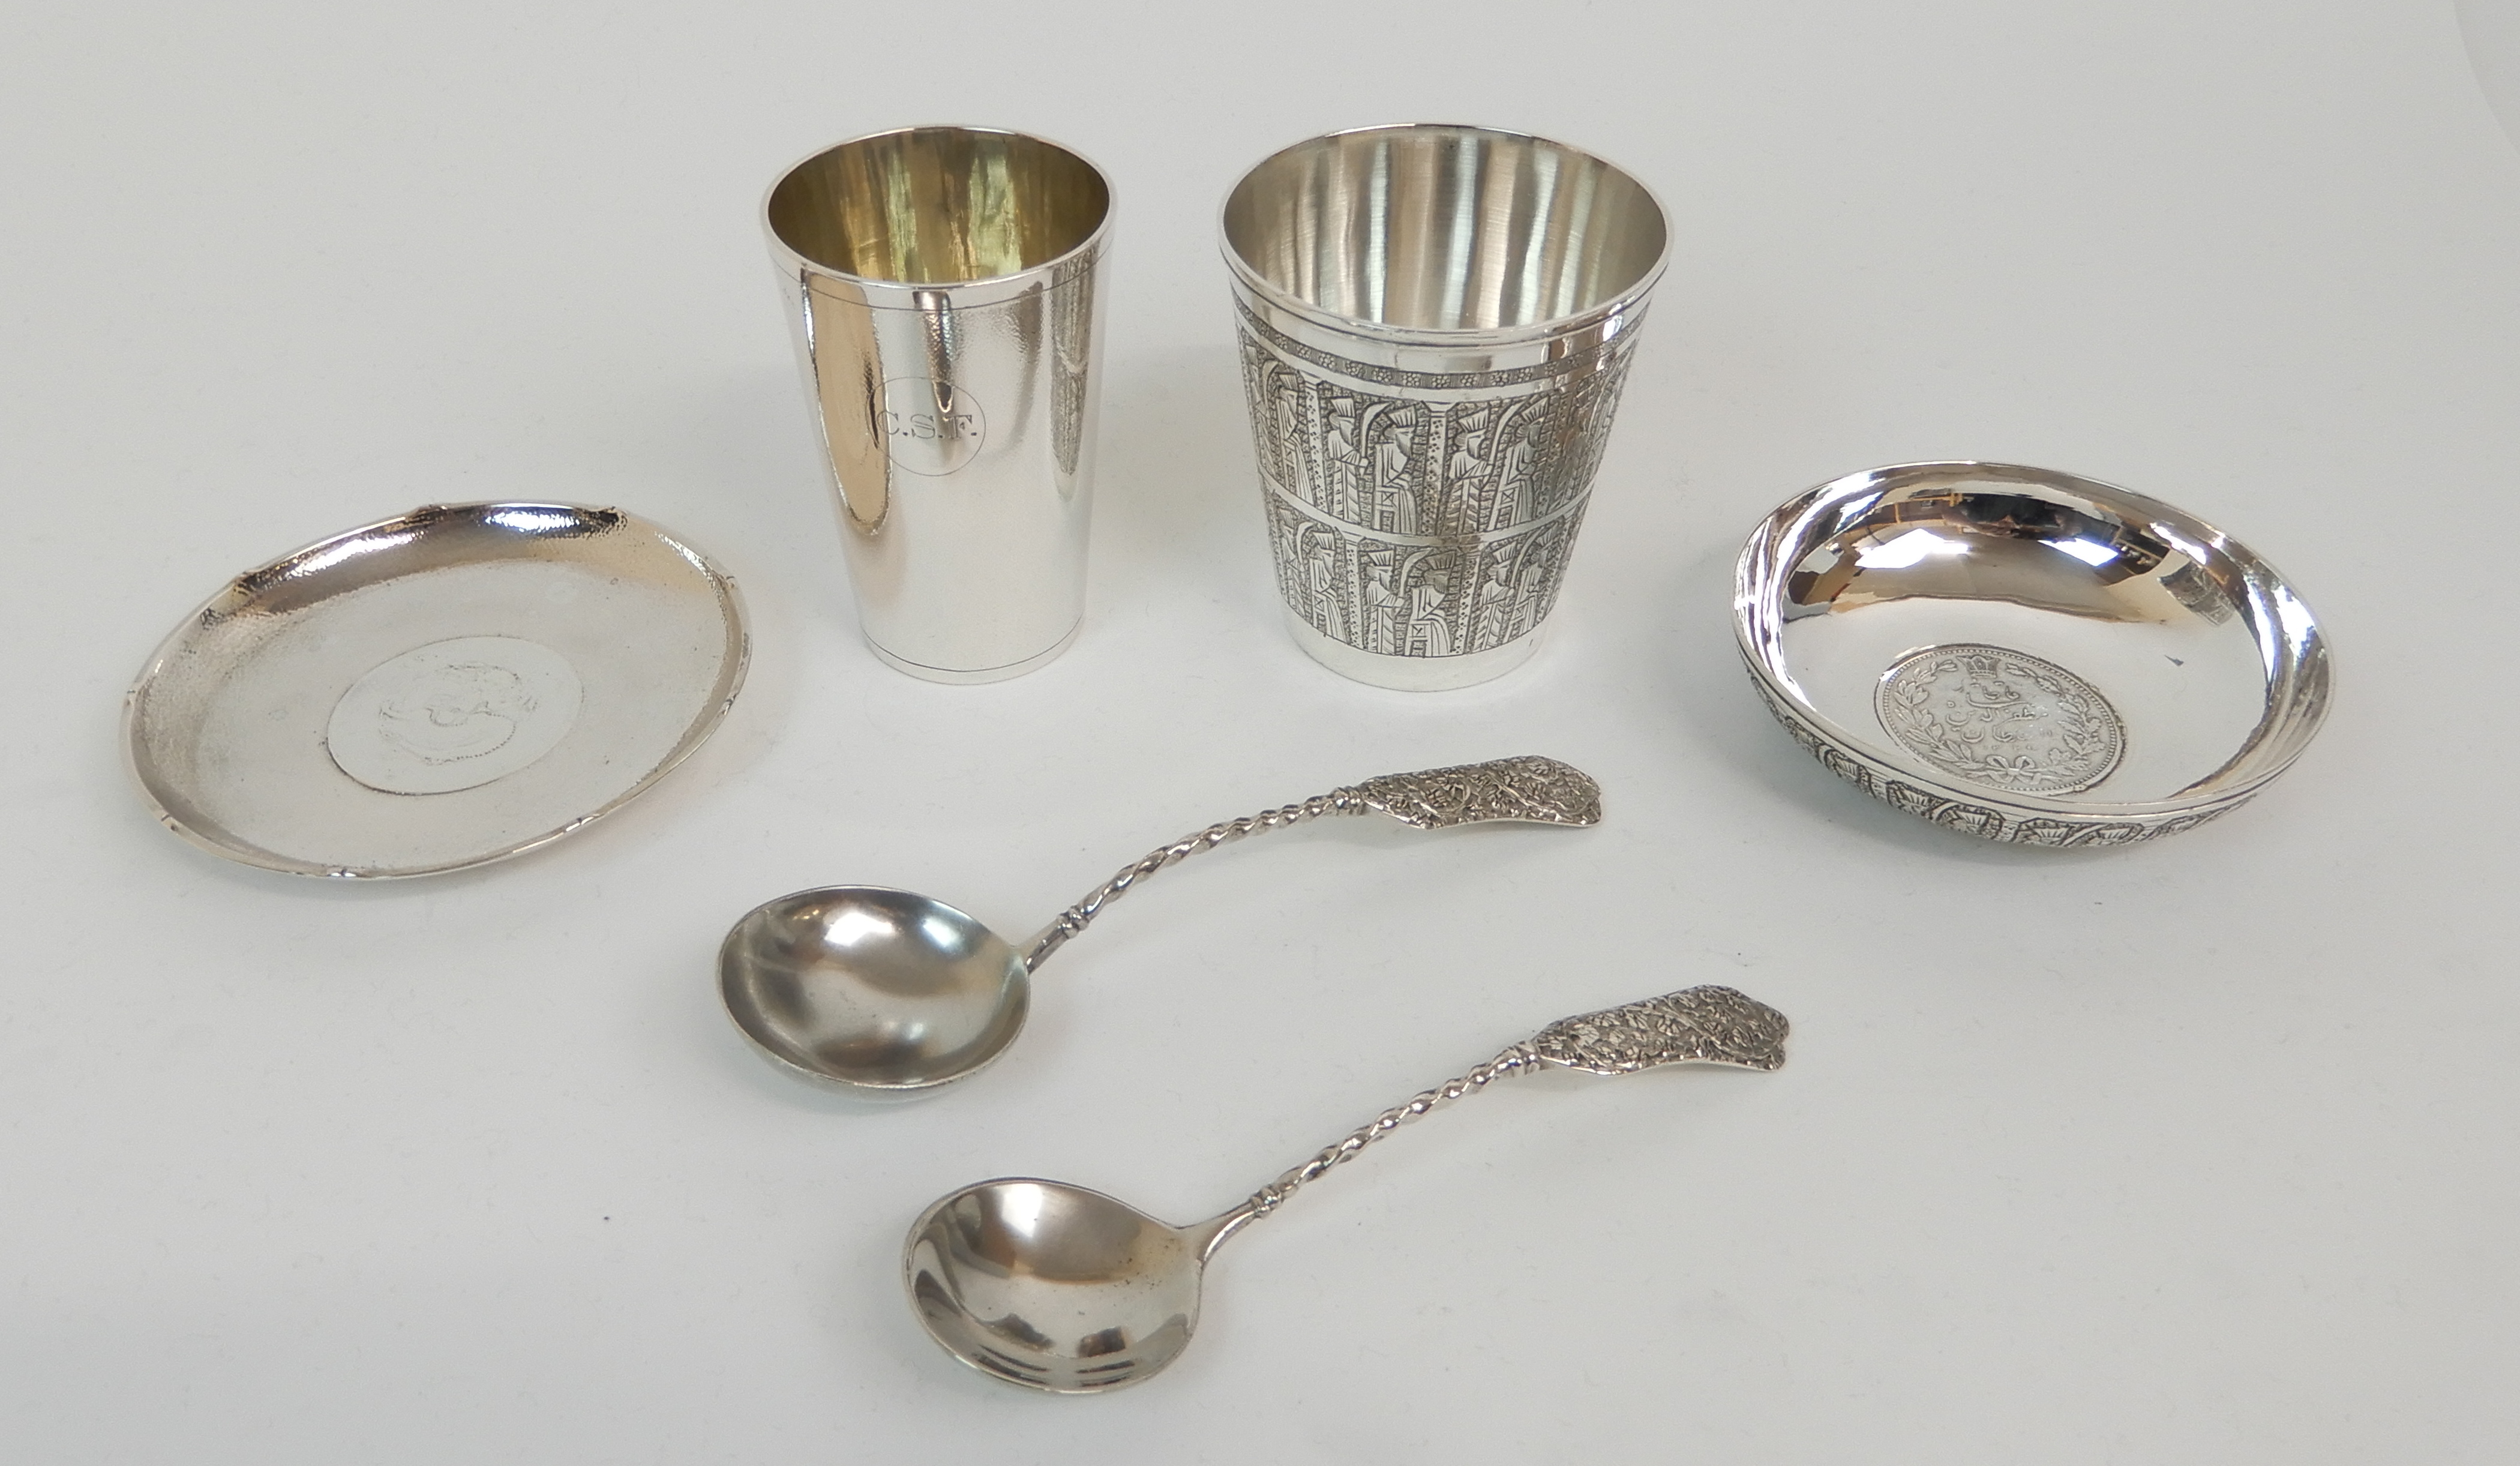 Lot 130 - A PERSIAN SILVER BEAKER marked VARTAN 84, of tapering cylindrical form, finely chased with religious